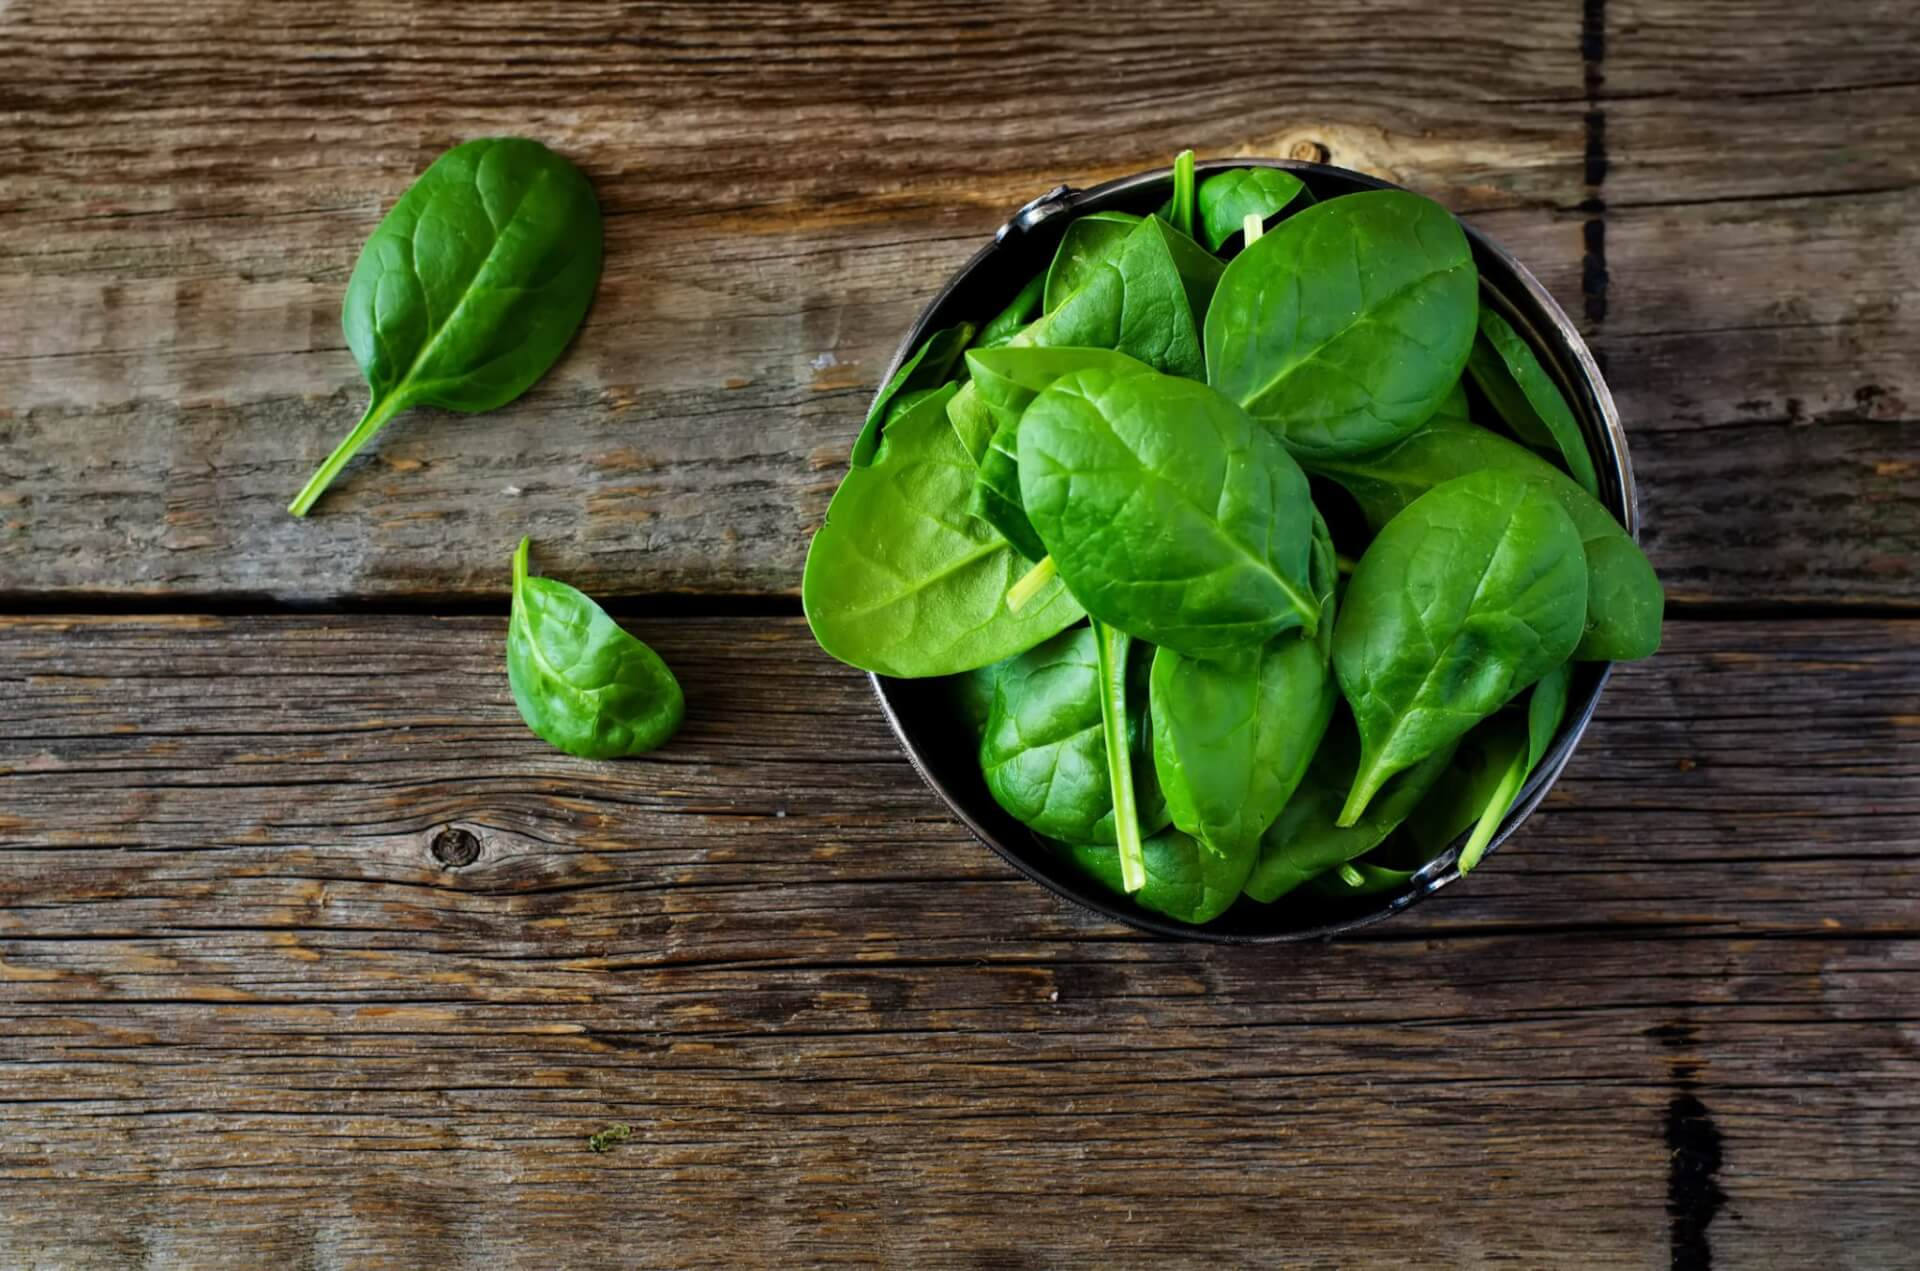 Does Spinach Contain Iron?